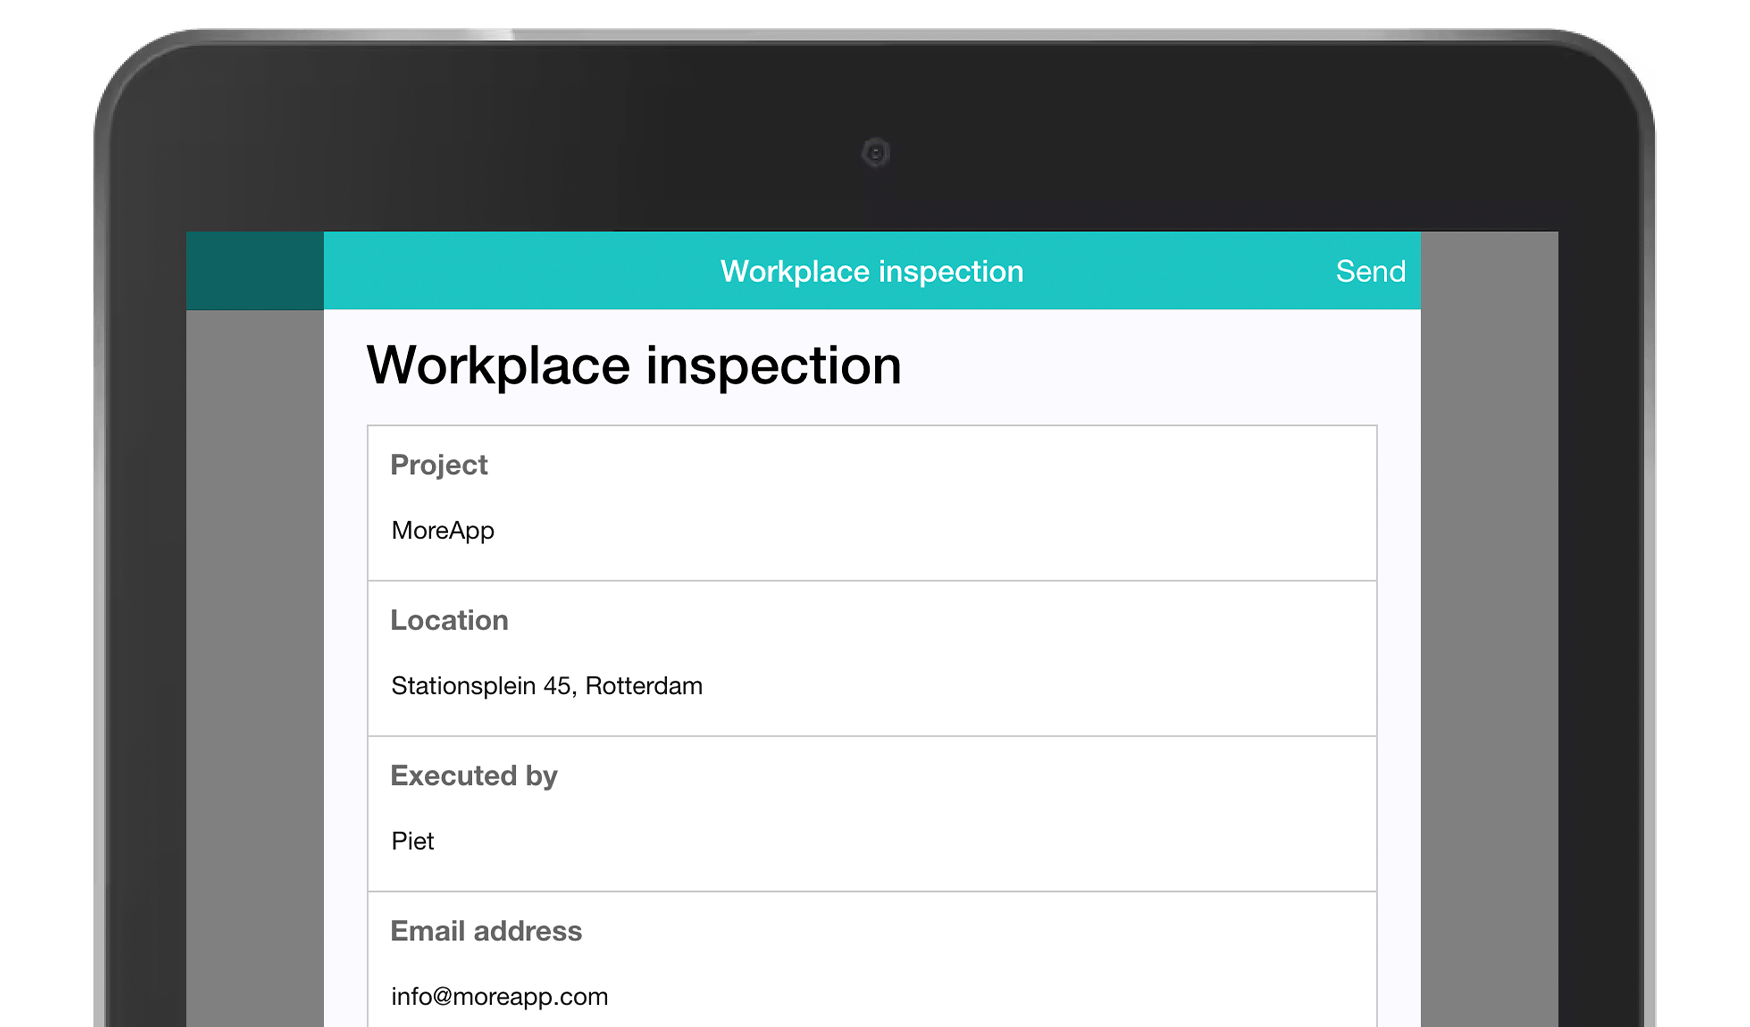 MoreApp Workplace inspection Form